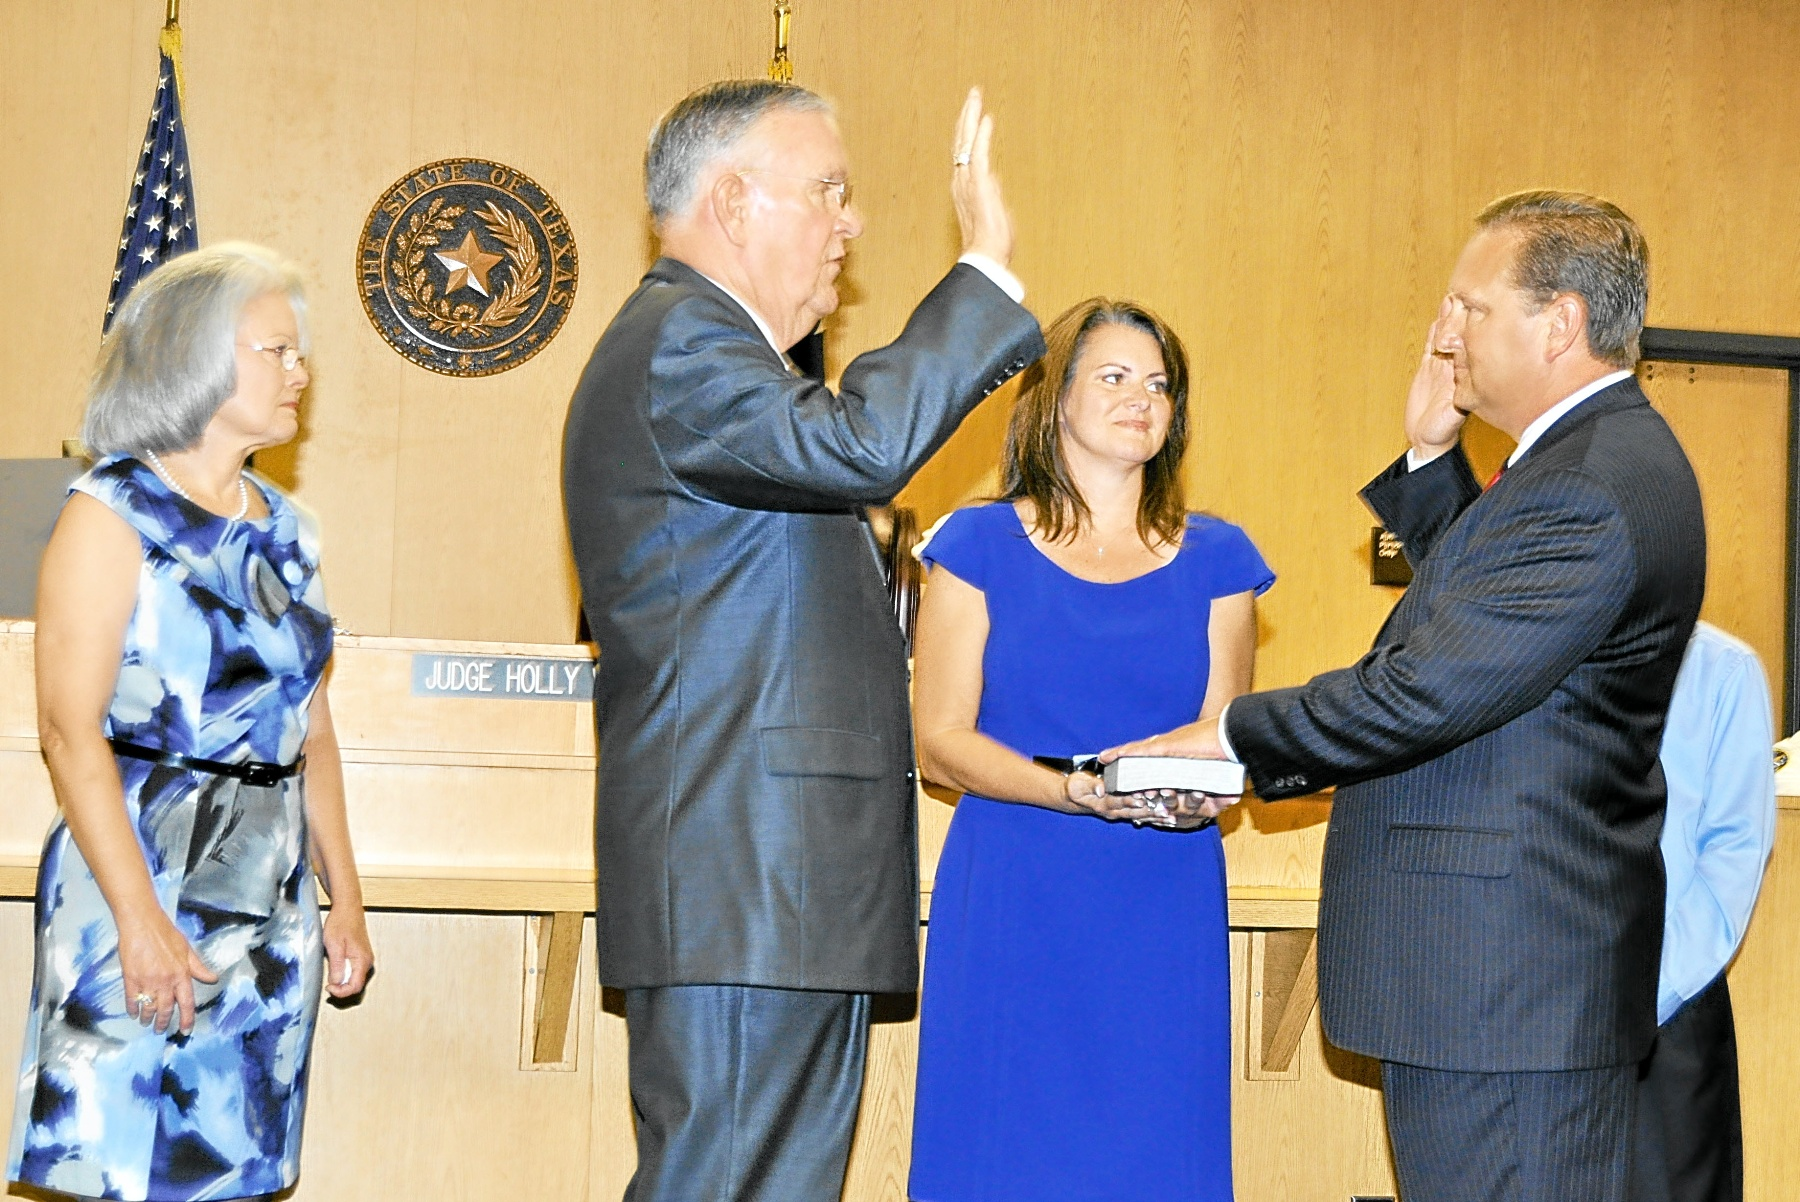 Constable Sandlin, Joined by his wife nerissa and their son blake, is sworn in to office in 2011 by former constable Bill bailey.